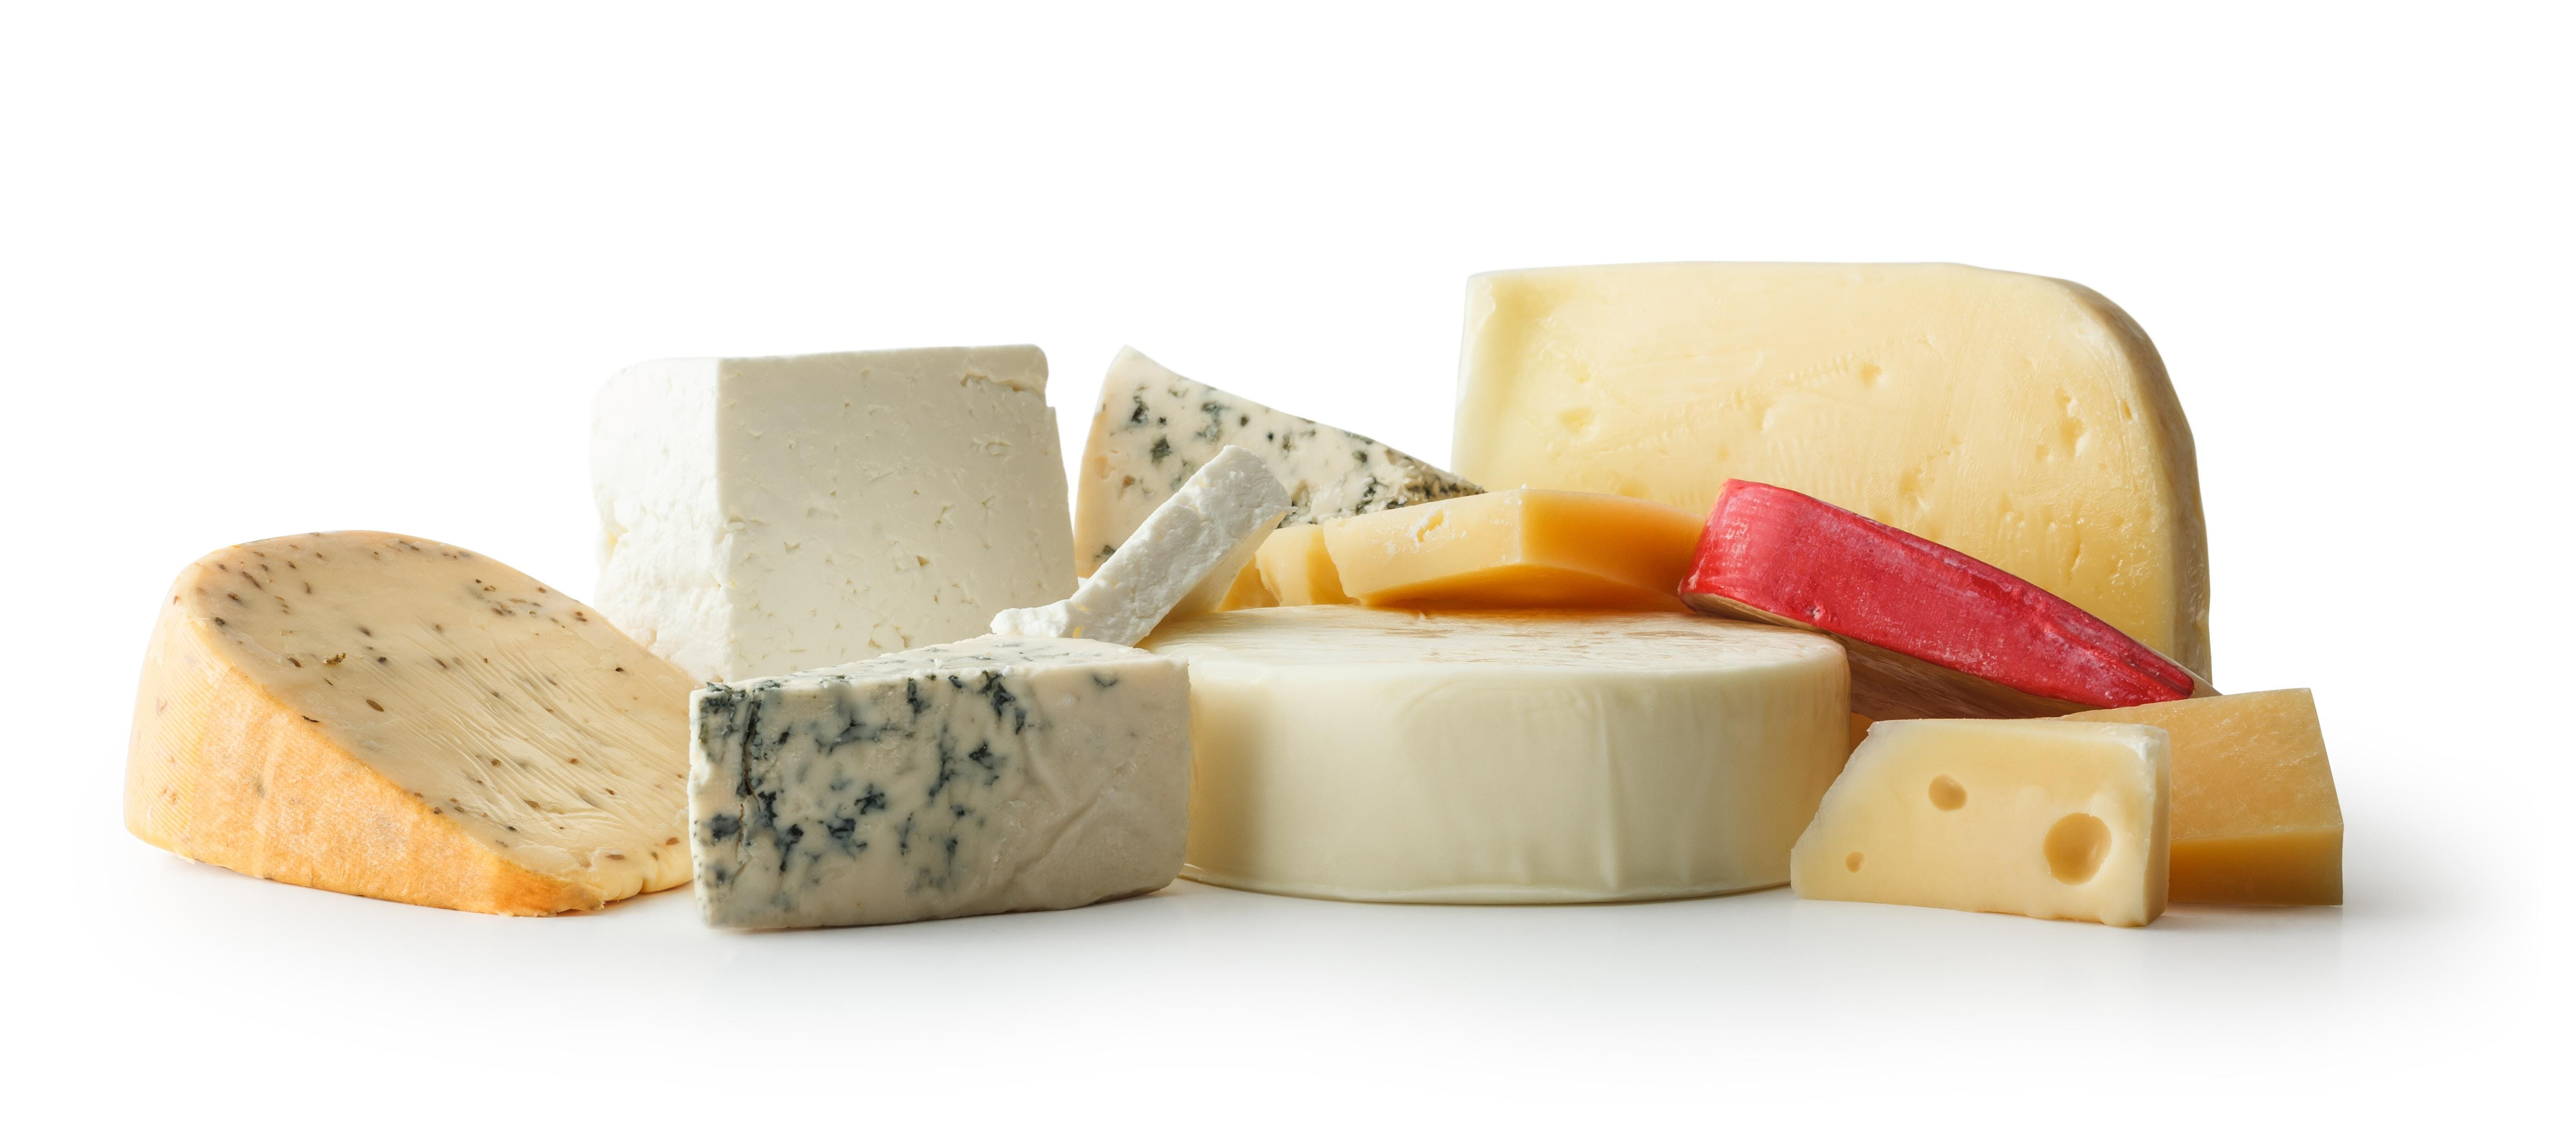 June Cheeses of the Month Tasting - Cascade banner